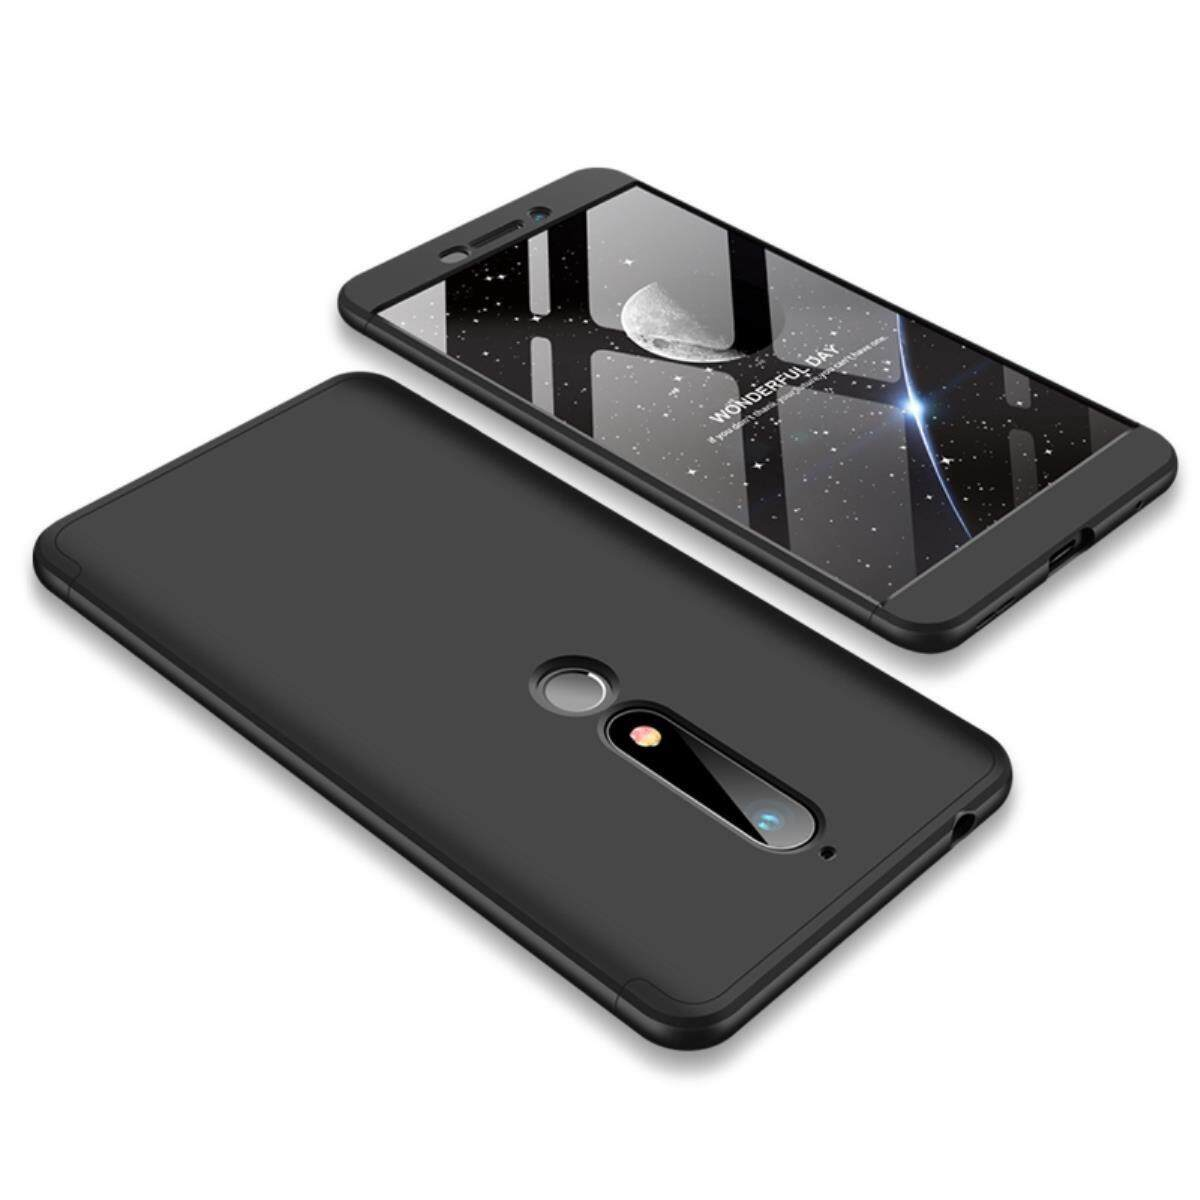 For Nokia 6 2018 3 In 1 Ultra-Thin Shockproof 360 Degree Protection Anti-